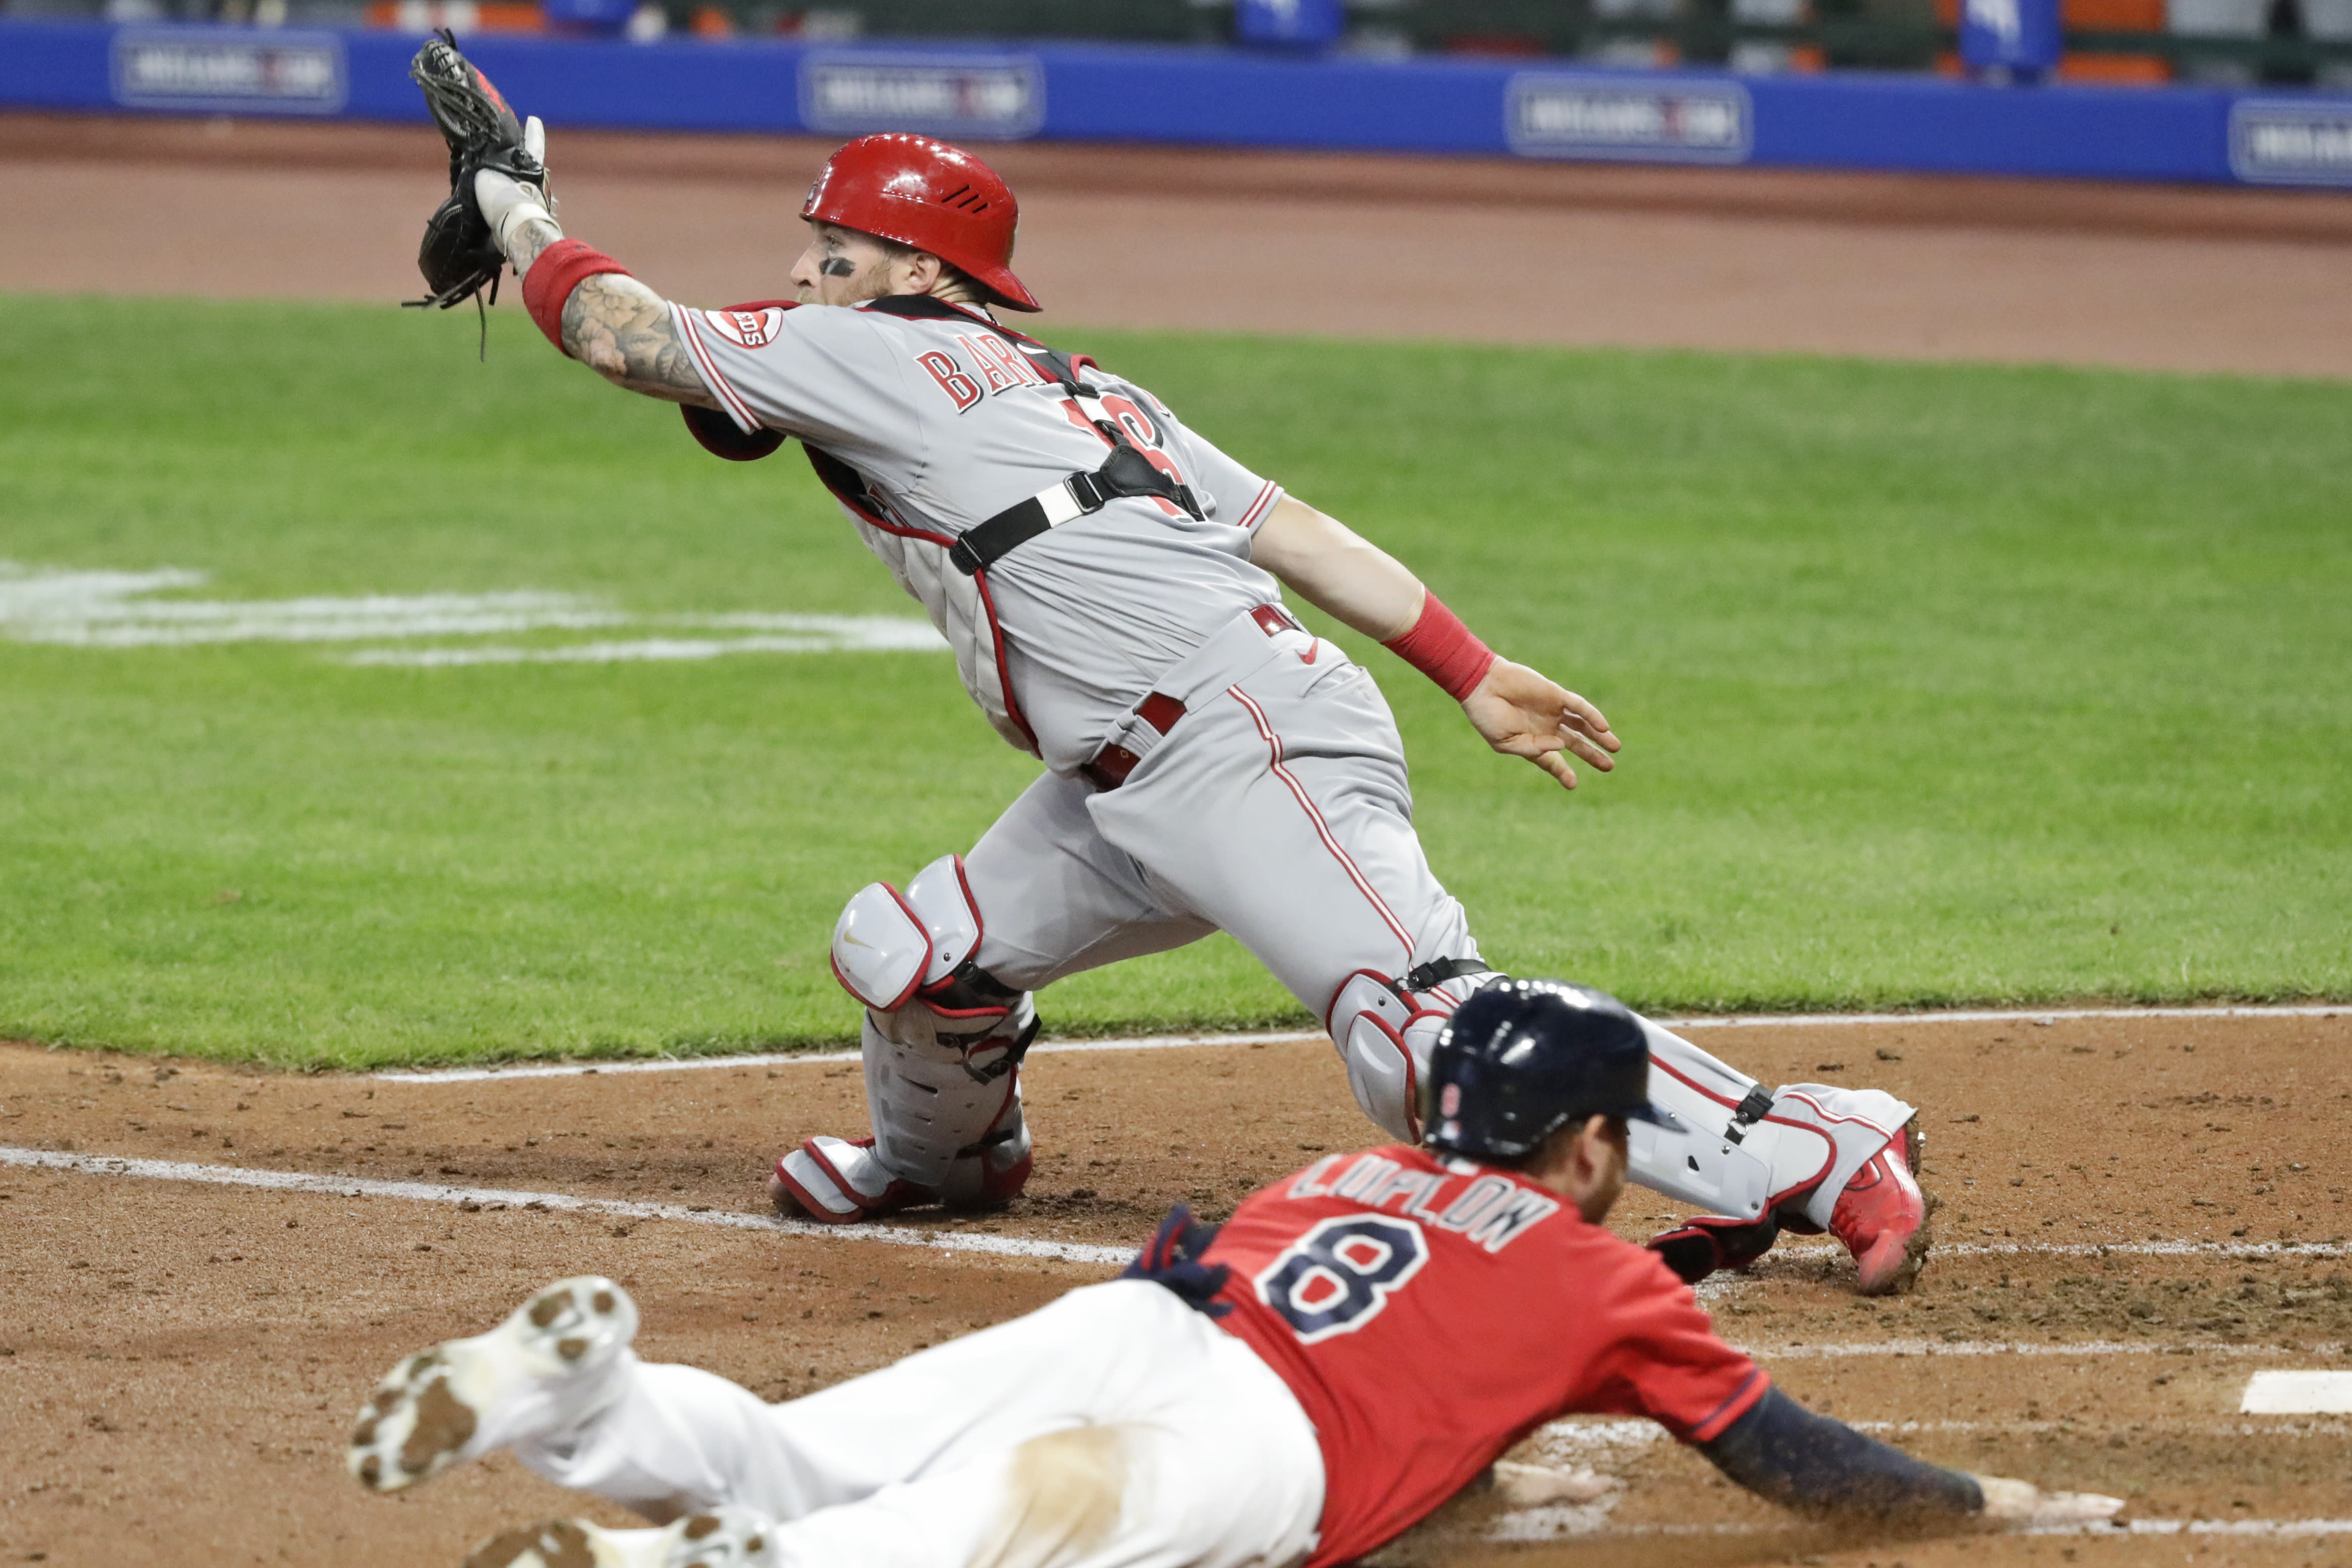 Cleveland Indians' Jordan Luplow, bottom, scores as Cincinnati Reds catcher Tucker Barnhart waits for the ball in the fifth inning in a baseball game, Wednesday, Aug. 5, 2020, in Cleveland. (AP Photo/Tony Dejak)